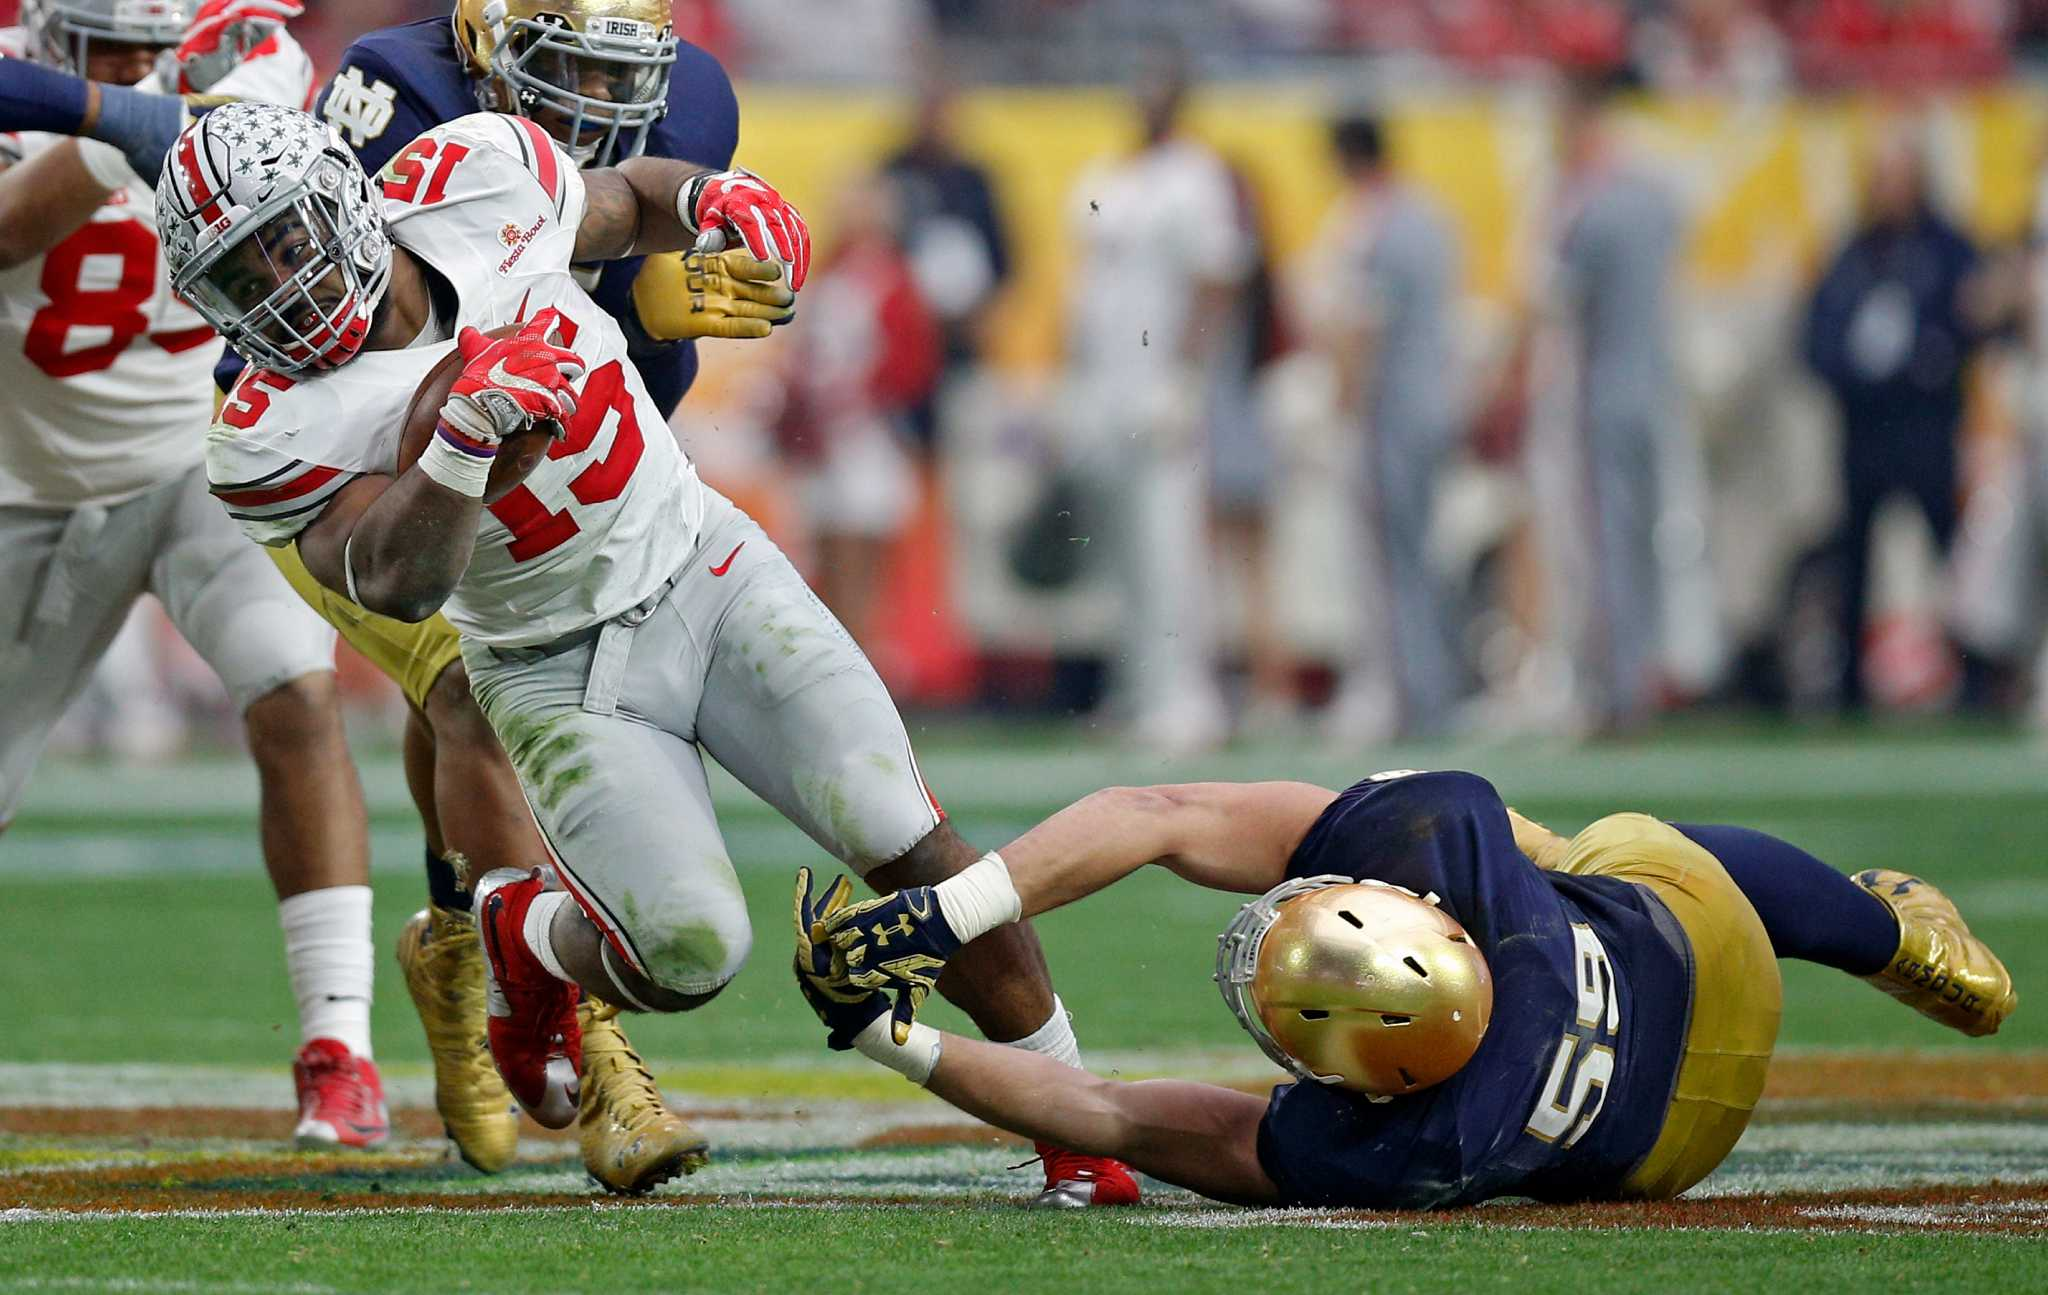 notre dame score live college top 25 football scores